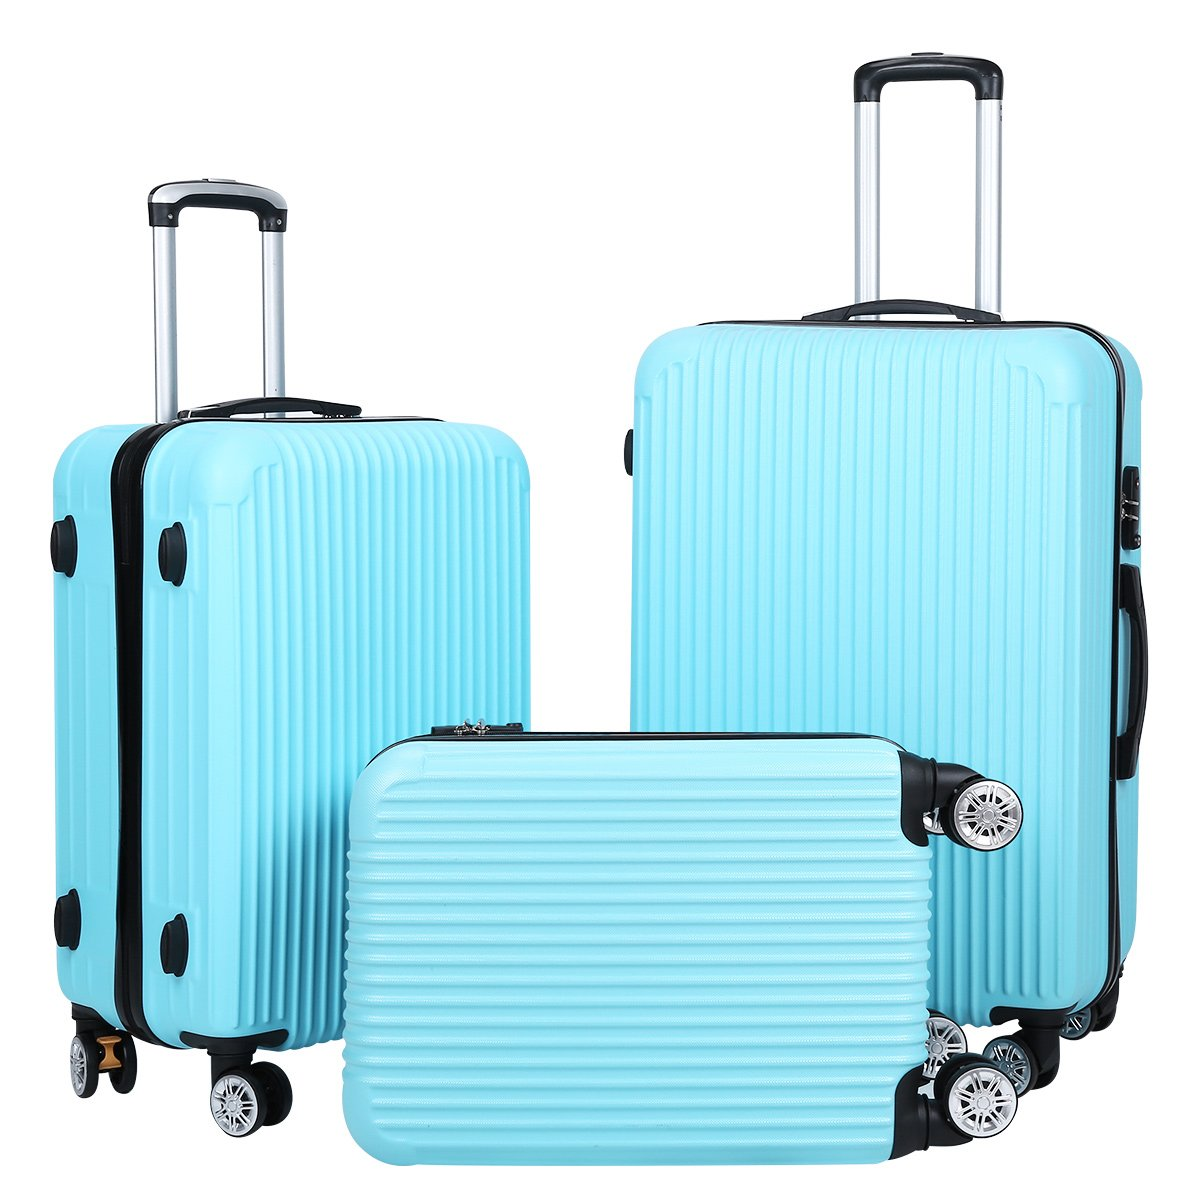 Setory 3 Piece Luggage Set Spinner Hardshell Lightweight Suitcase Set with TSA Lock - Blue